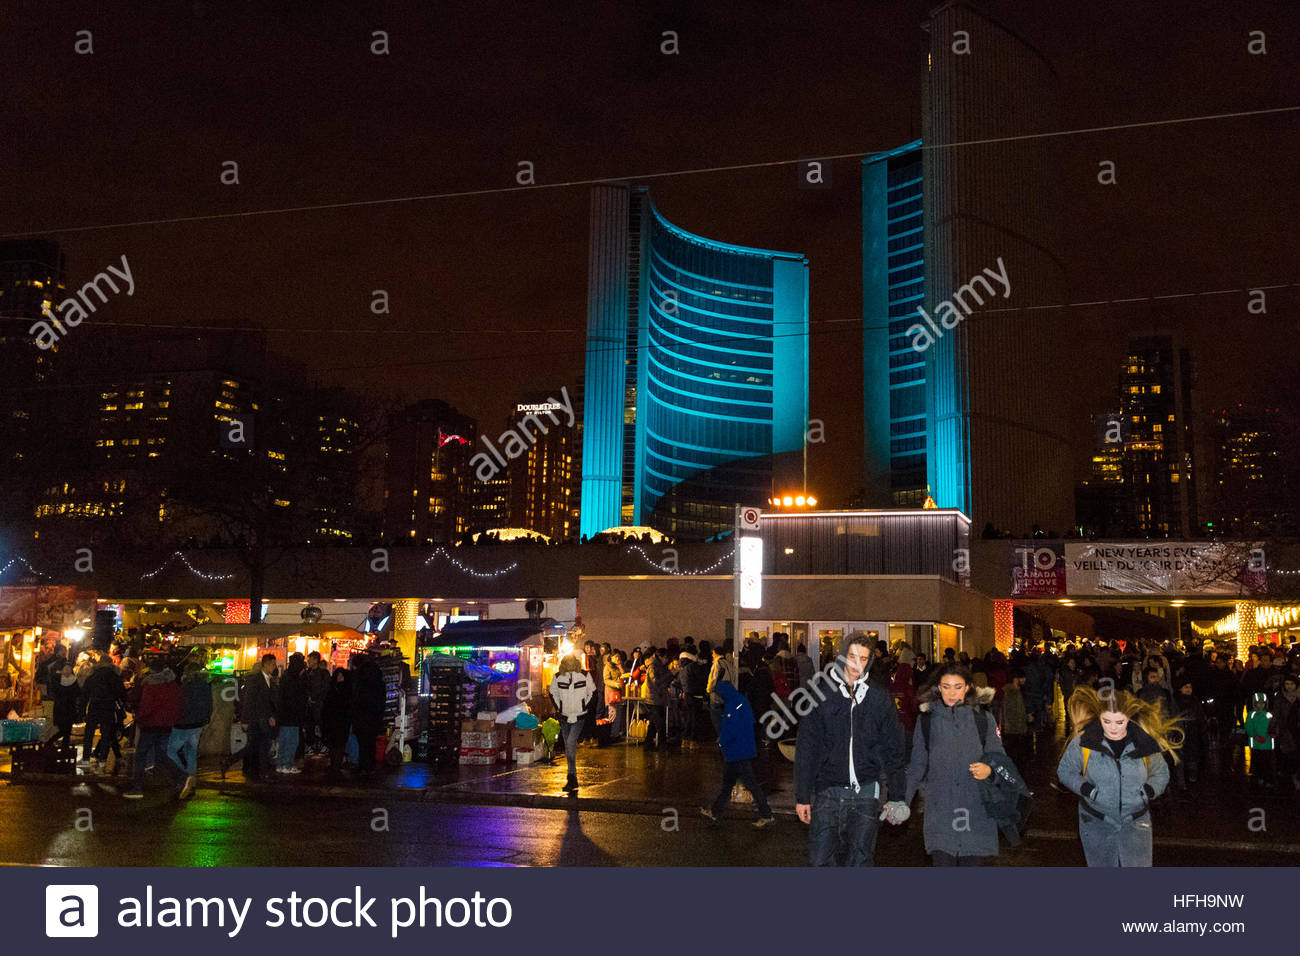 Toronto  Canada  1st January  2017  New Year s Eve celebrations in     Toronto  Canada  1st January  2017  New Year s Eve celebrations in Nathan  Phillips Square  Ice Skating party full of Christmas lights and decorations